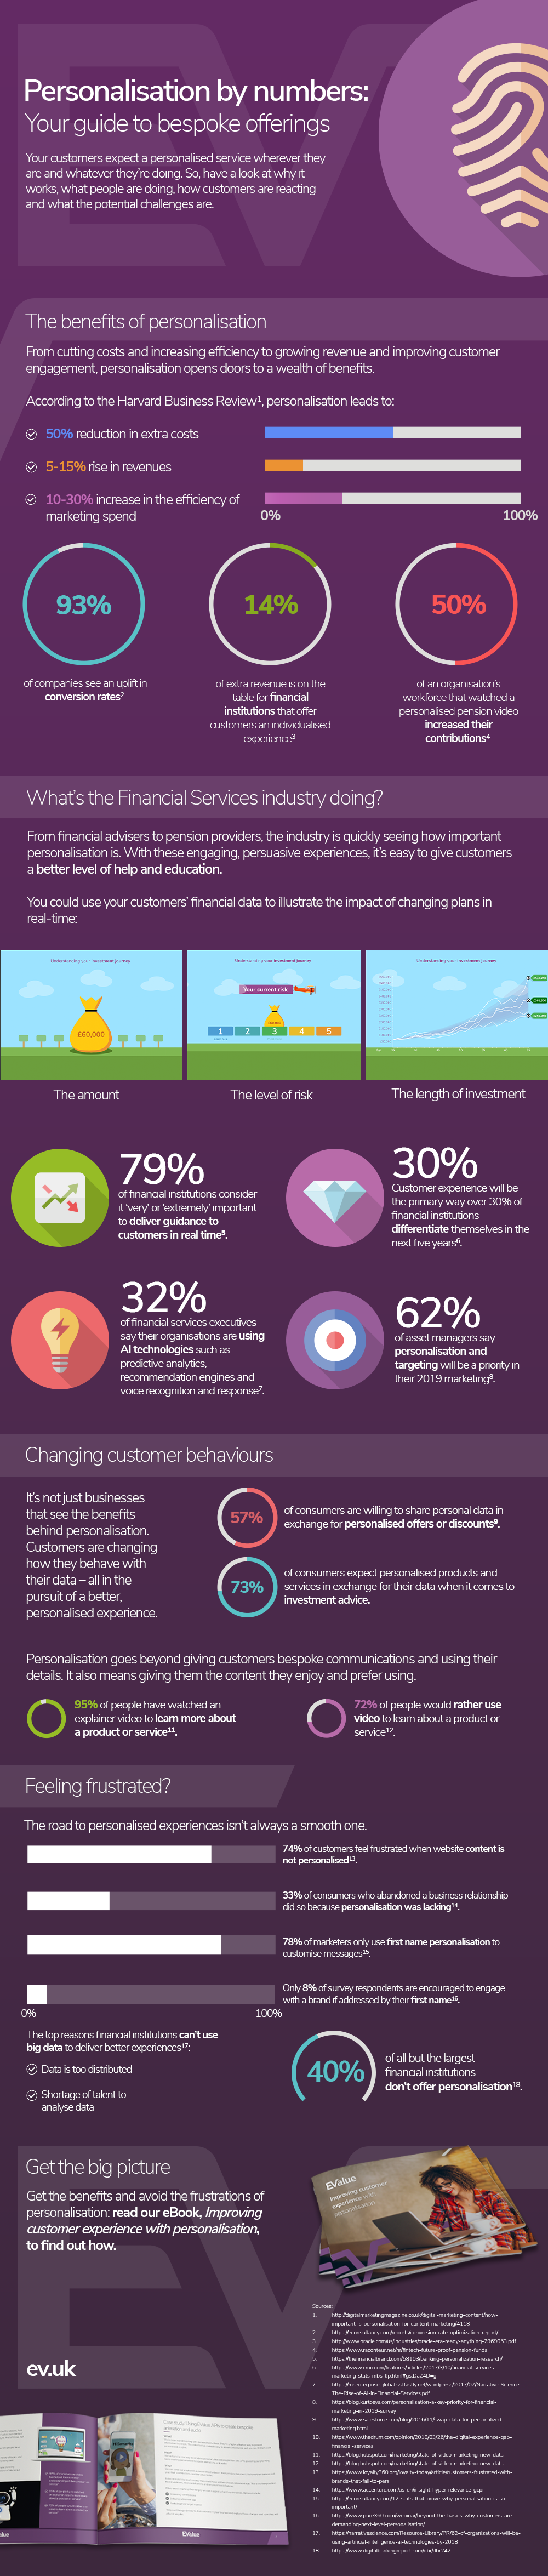 The benefits of personalisation